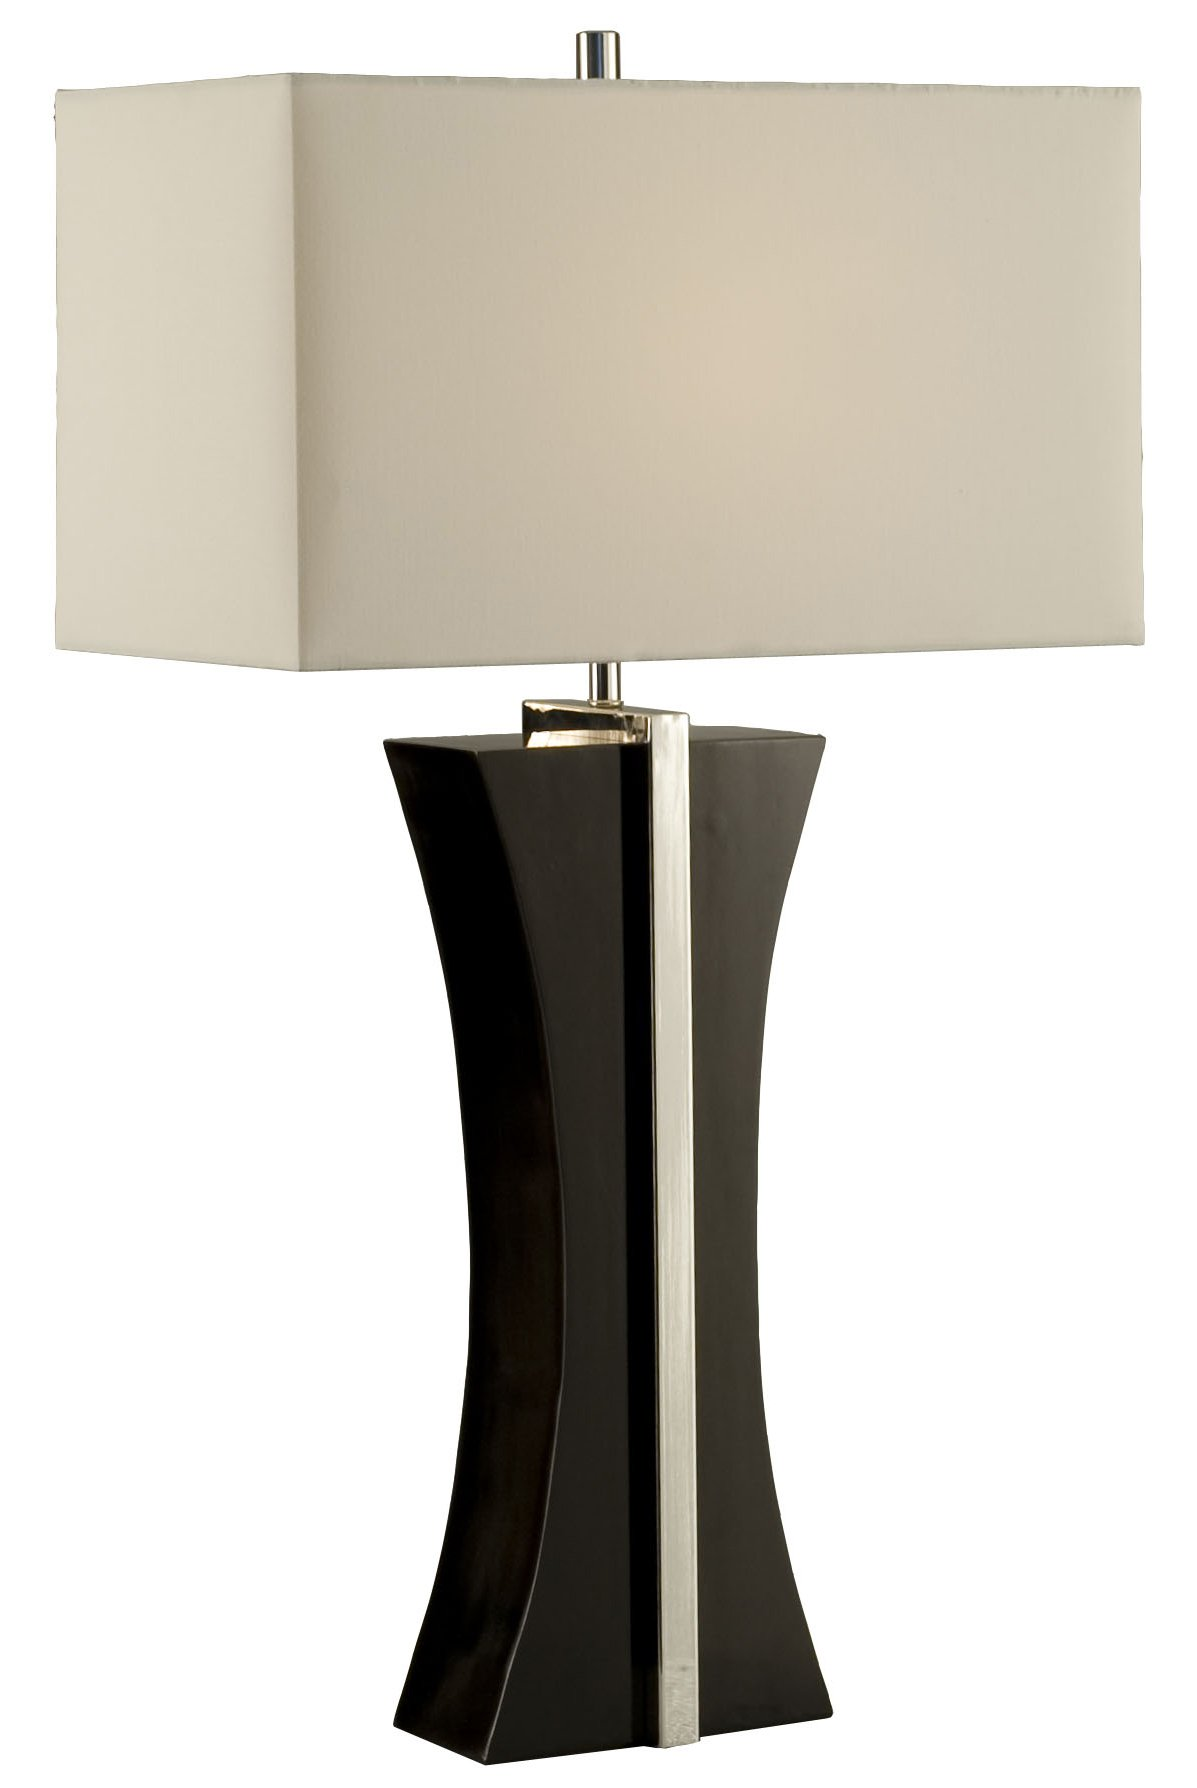 nova lighting 1010046 ridgeway modern contemporary table